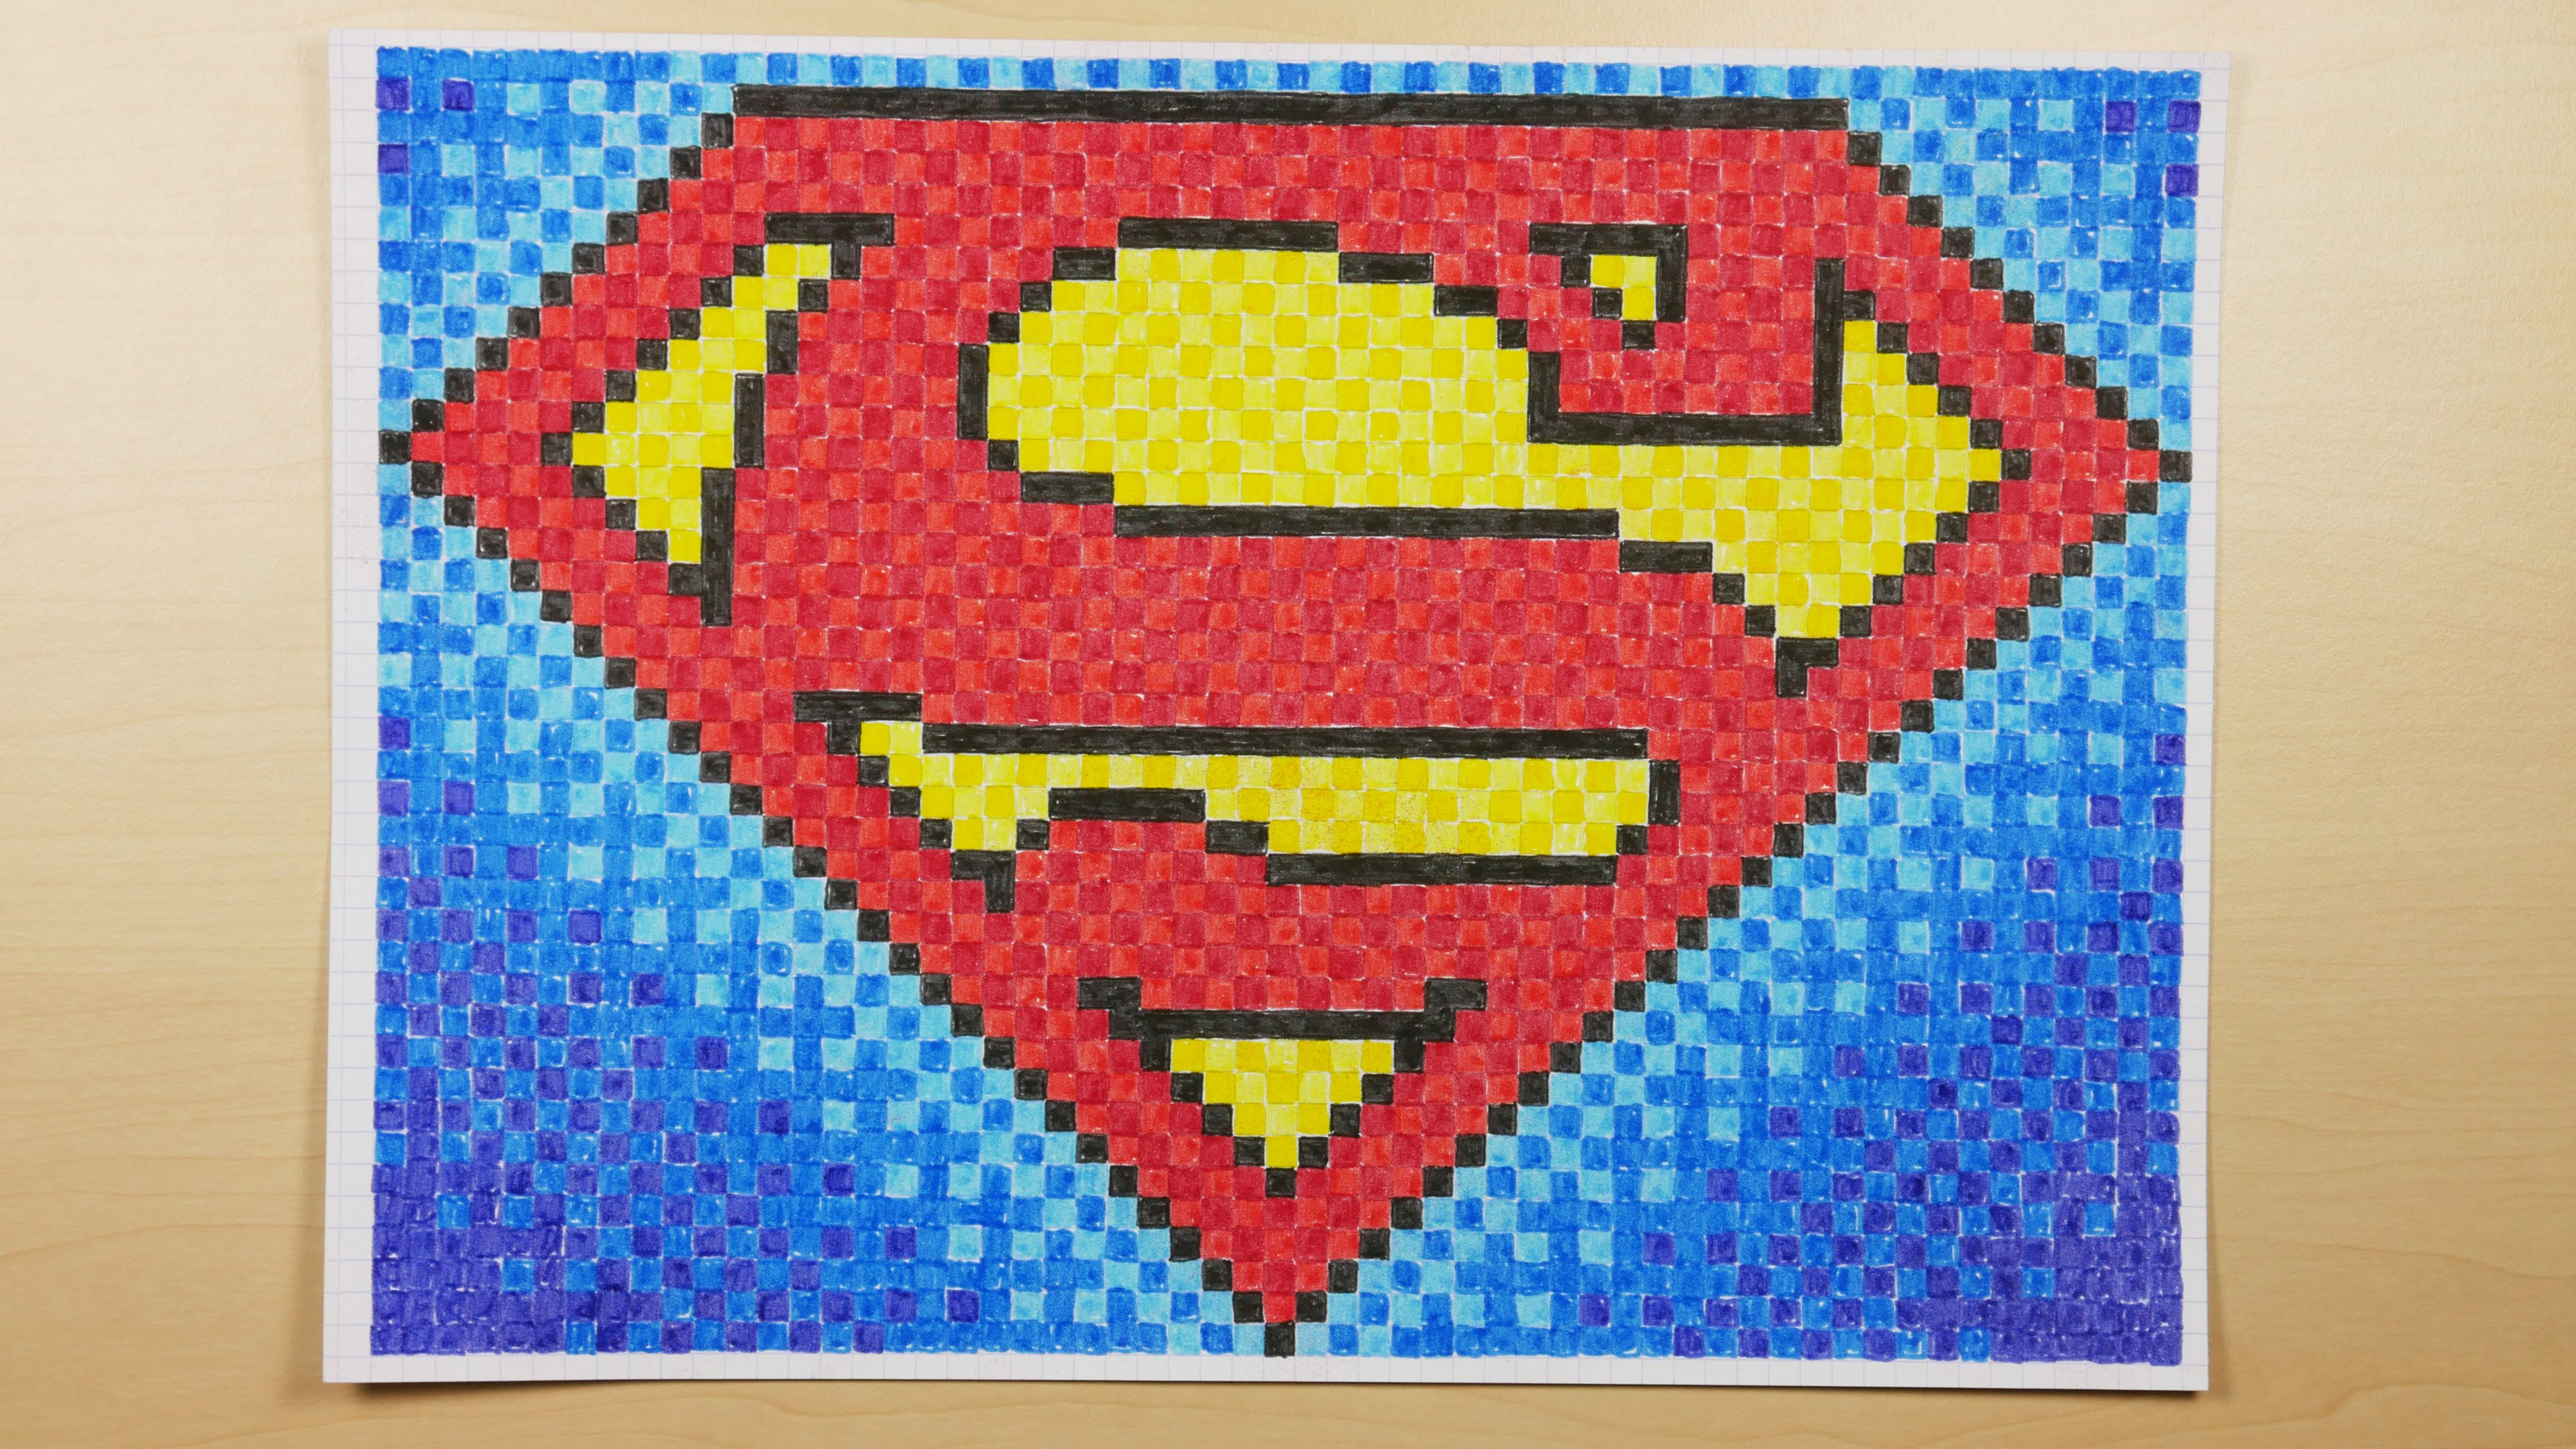 Drawn pixel art super man Draw Doodle How to